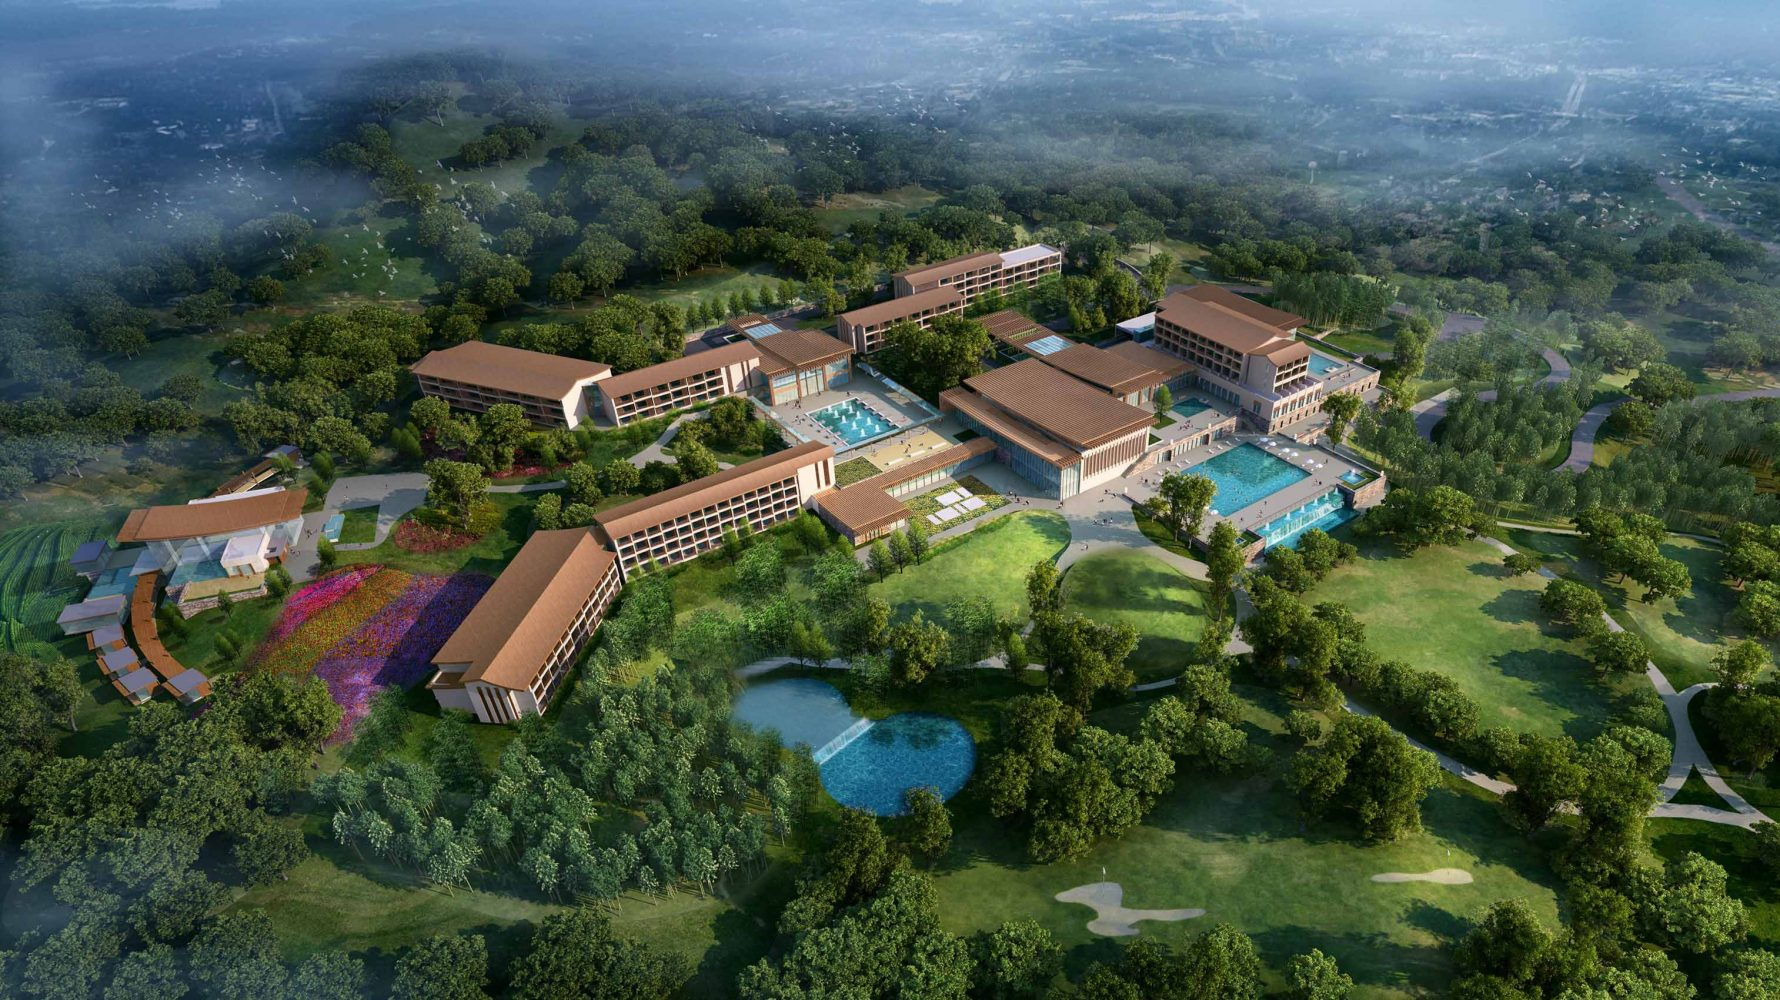 CLUB MED RESORT ANJI, by archilier architecture